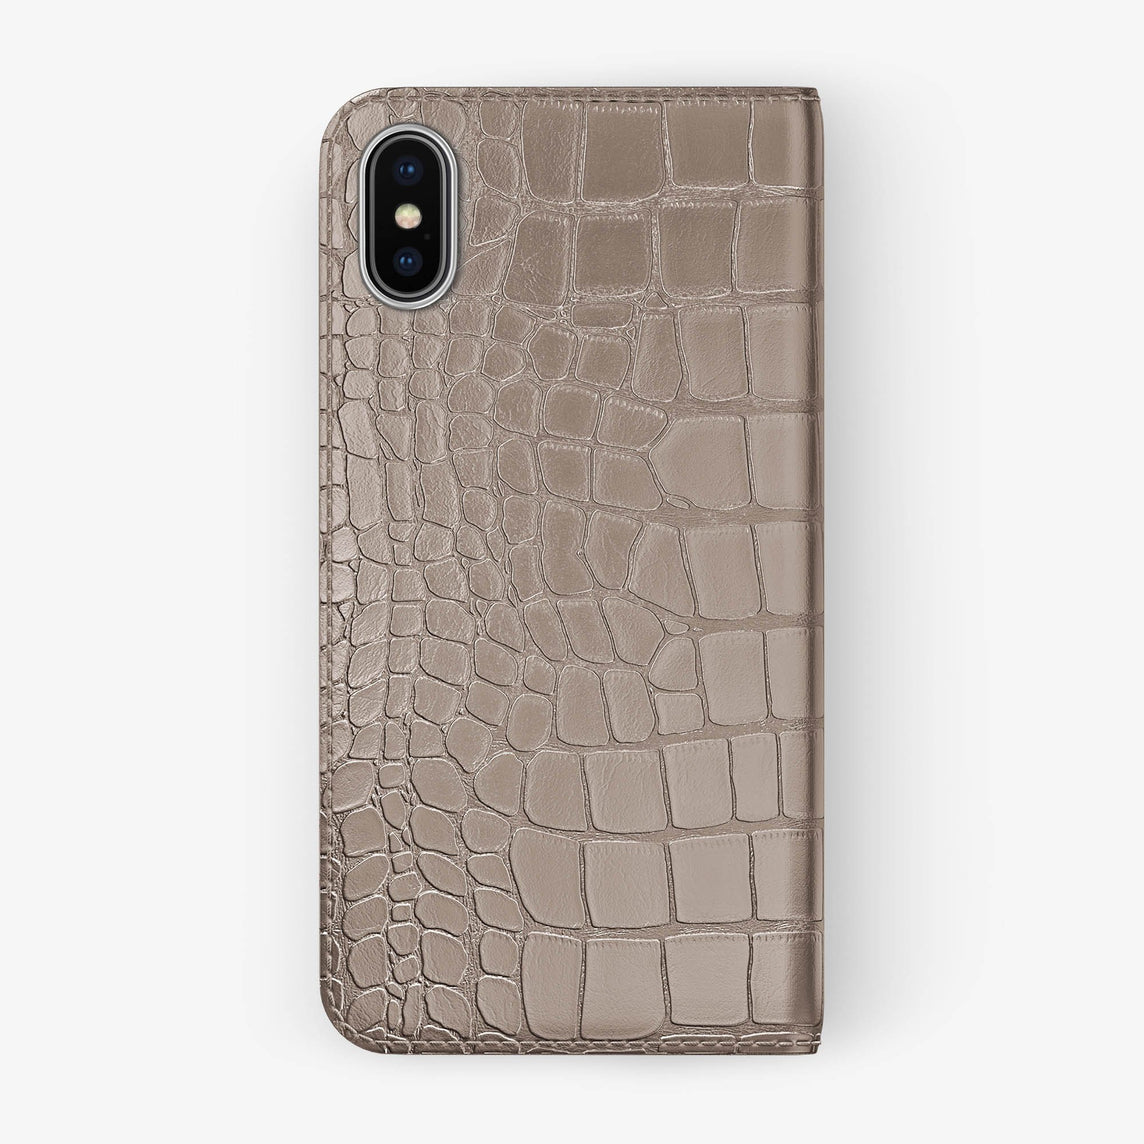 Alligator Folio Case iPhone X/Xs | Latte - Stainless Steel without-personalization